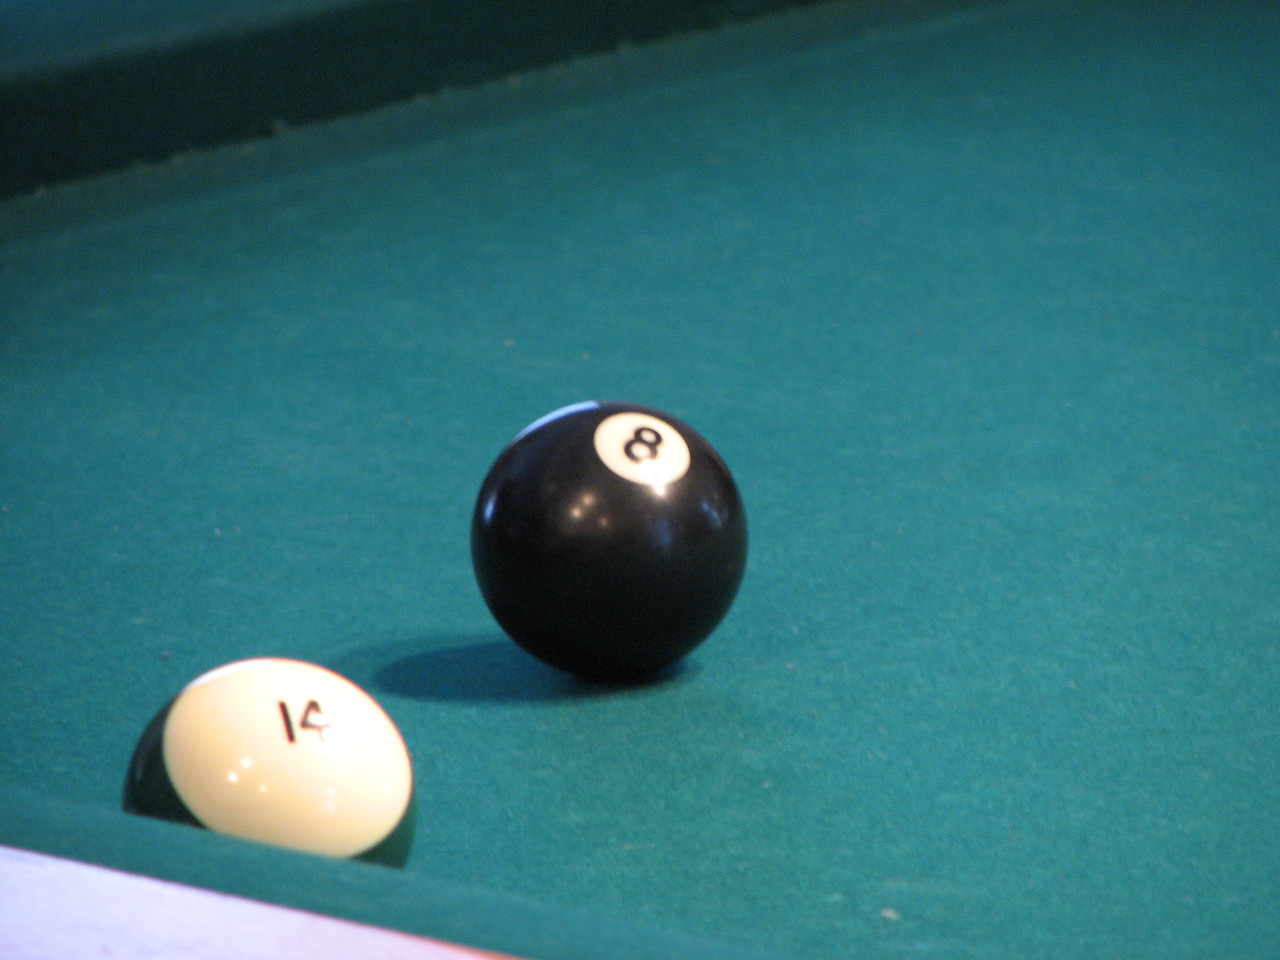 2006 12 20 Wed - Behind the 8 ball